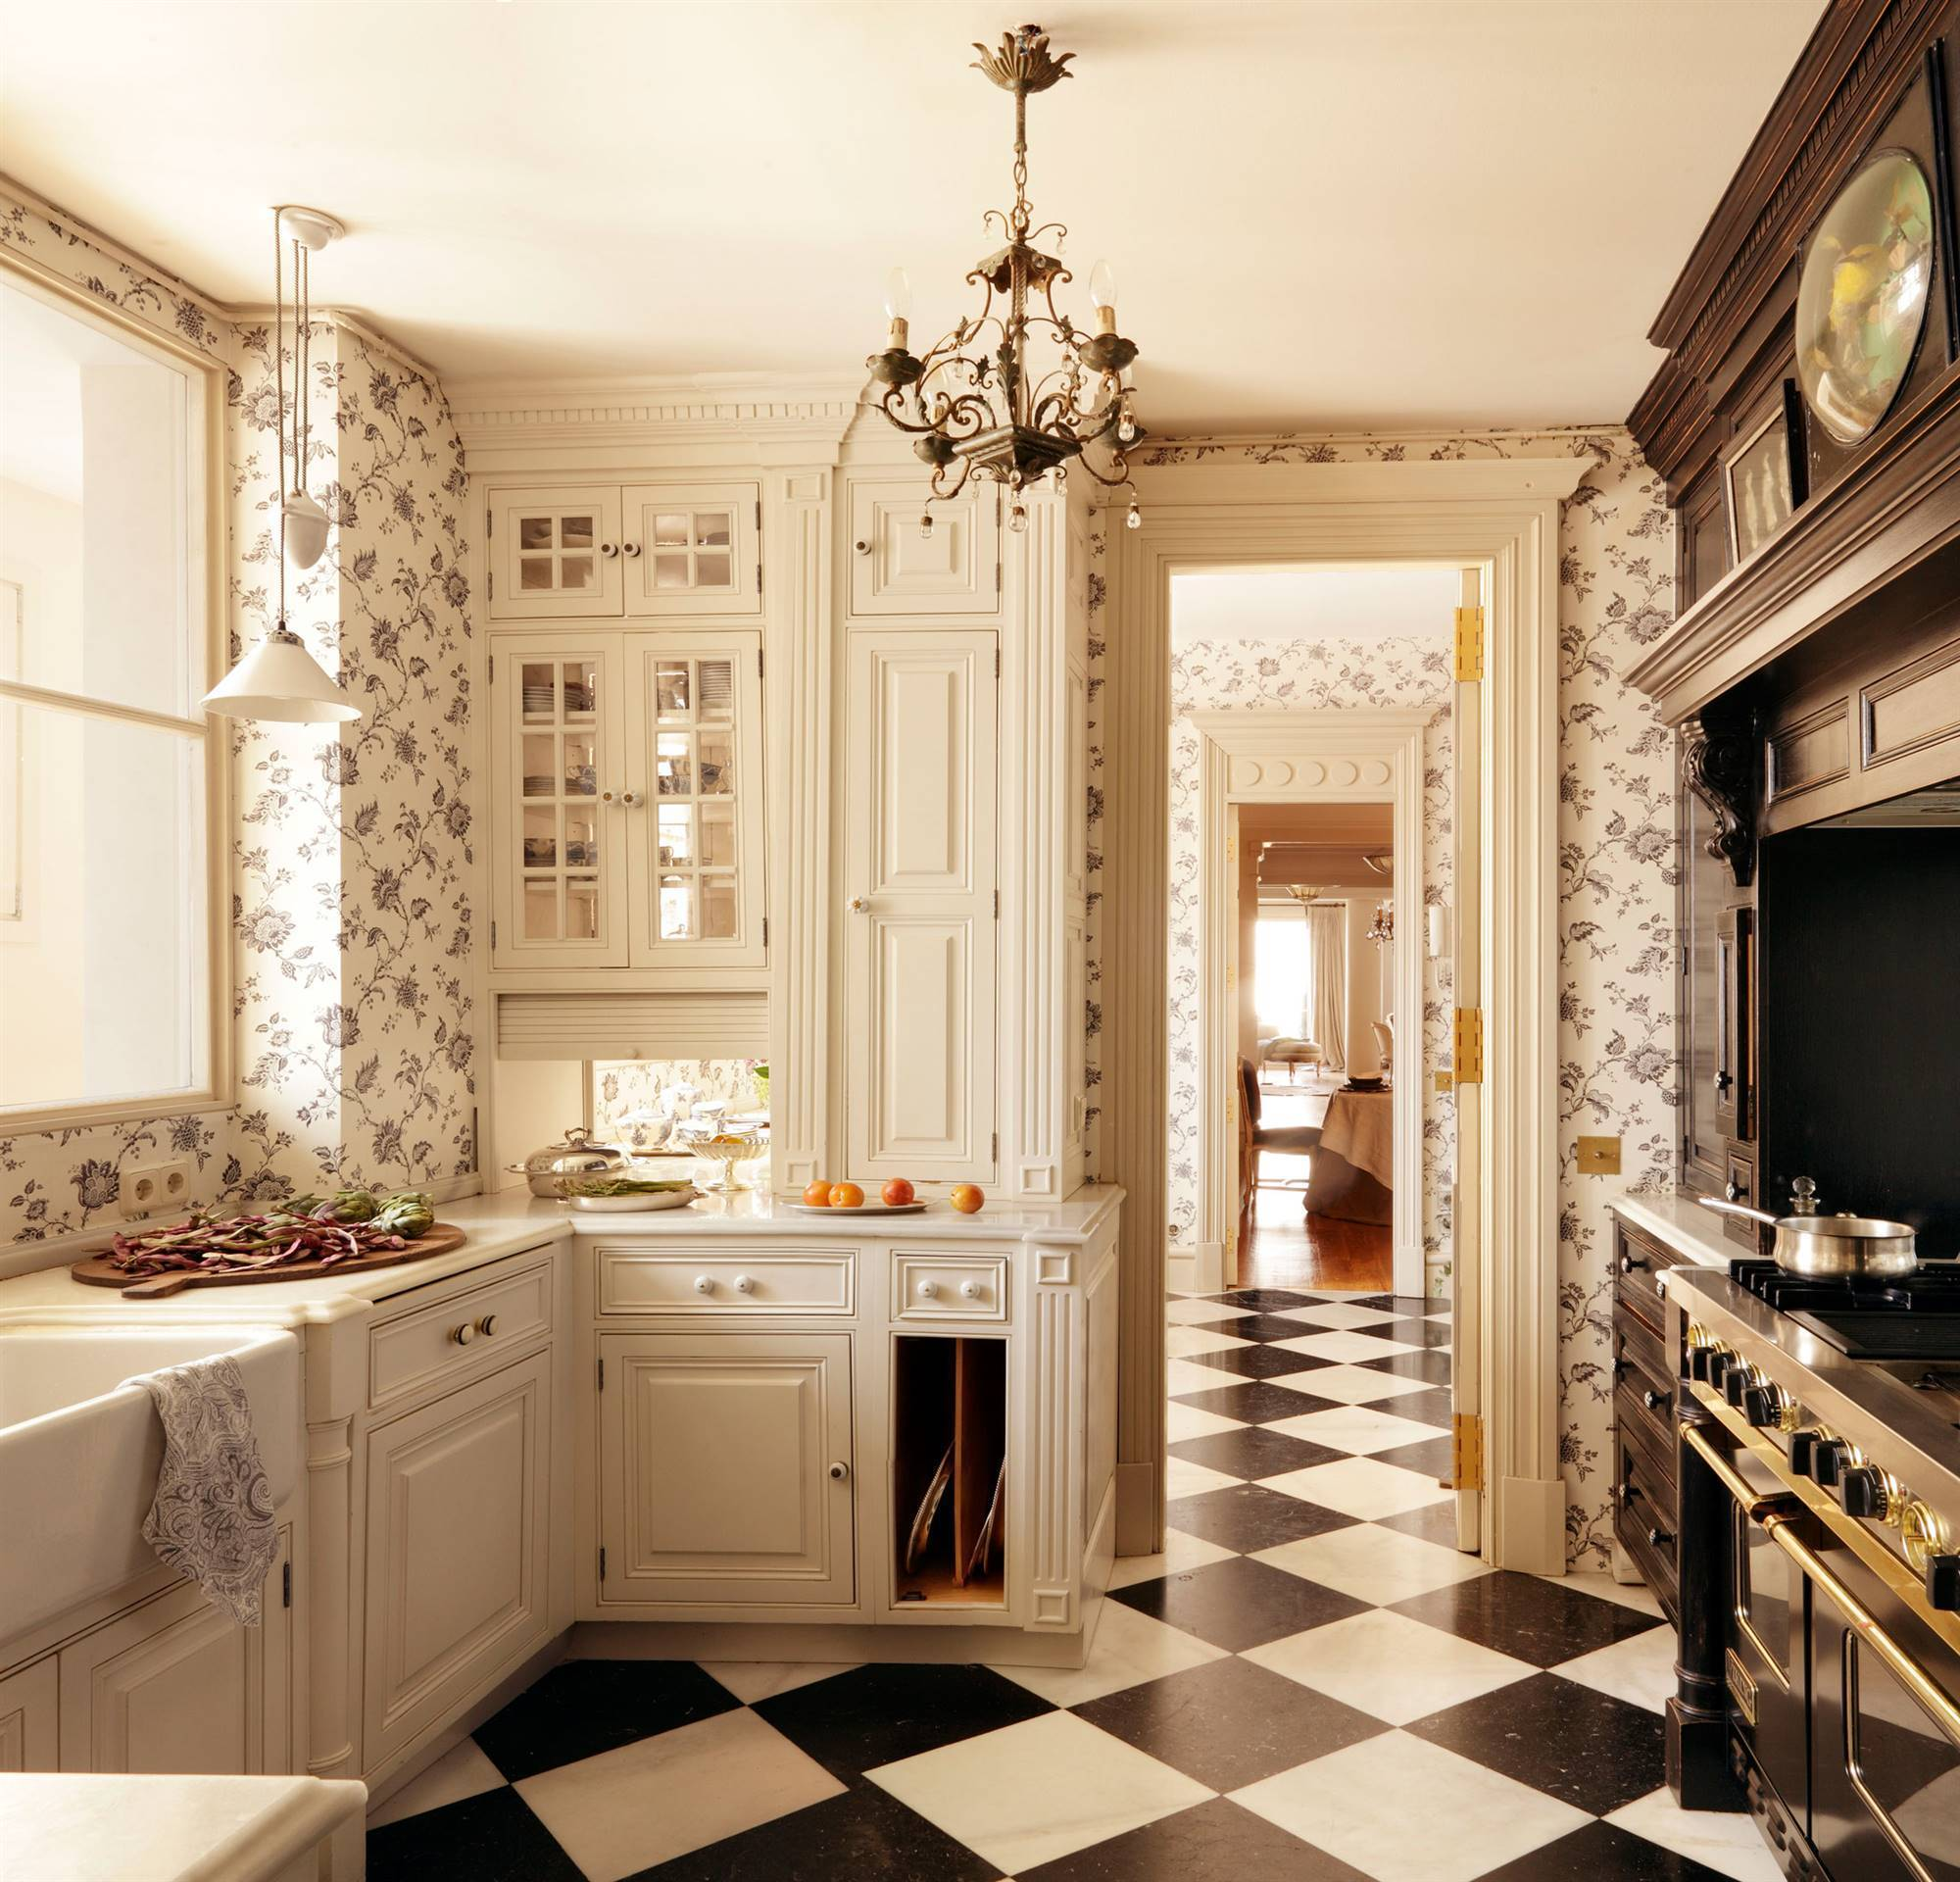 classic-kitchen-with-white-and-black-checkerboard-floor 00351699. A kitchen with aristocratic airs